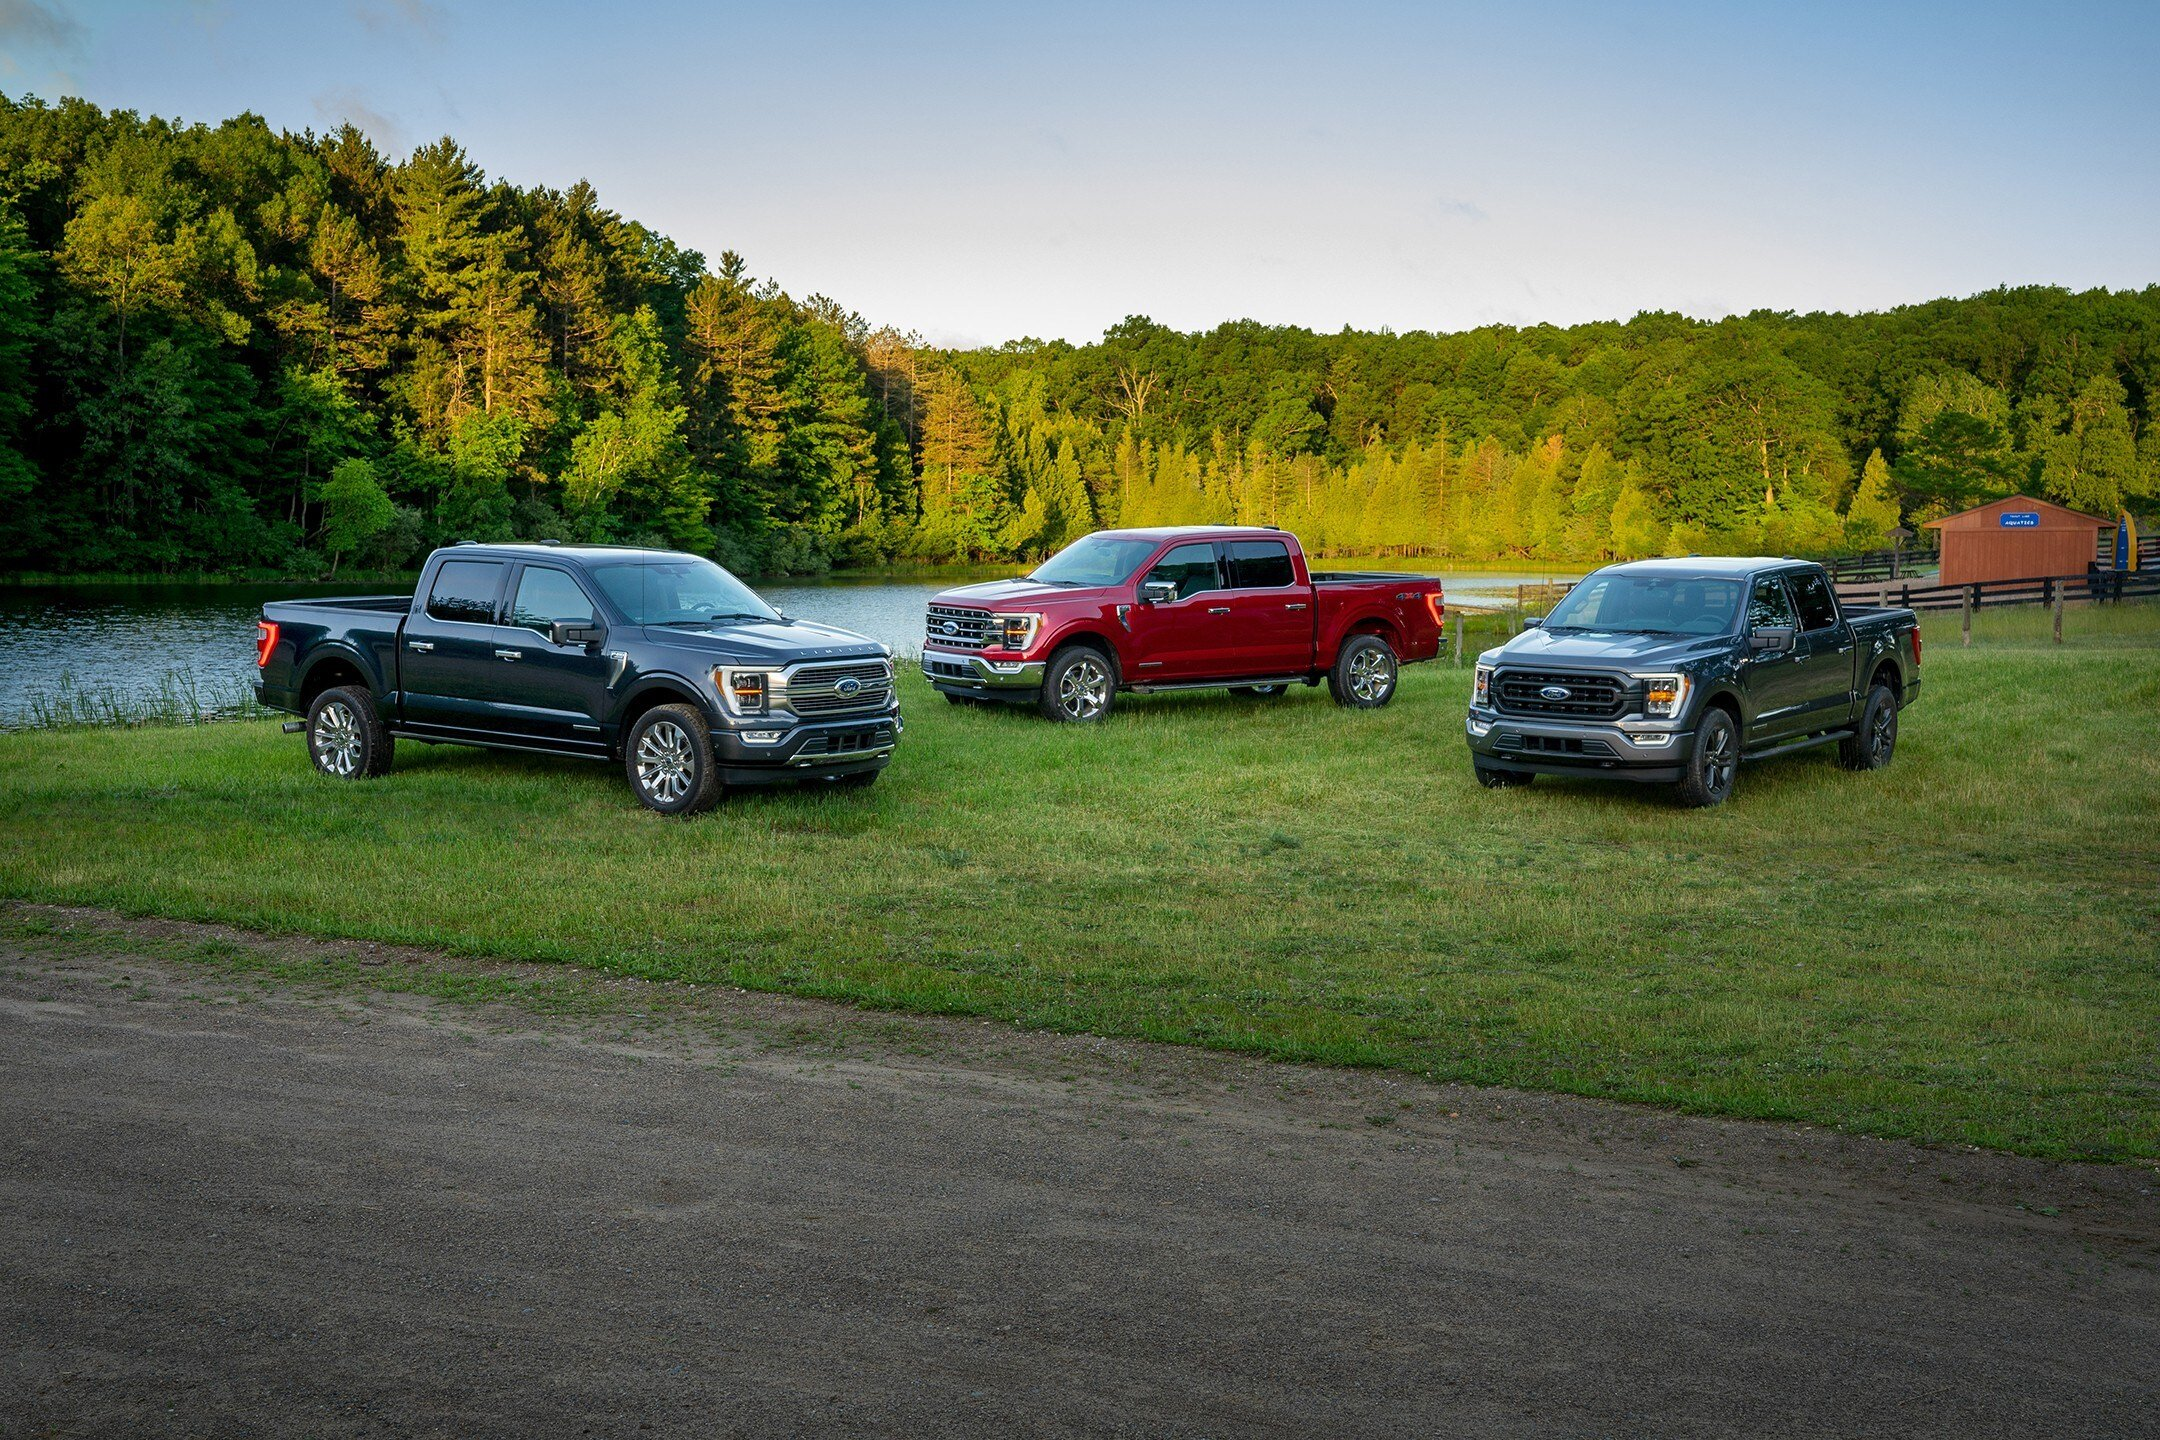 New lineup of 2021 Ford F-150s